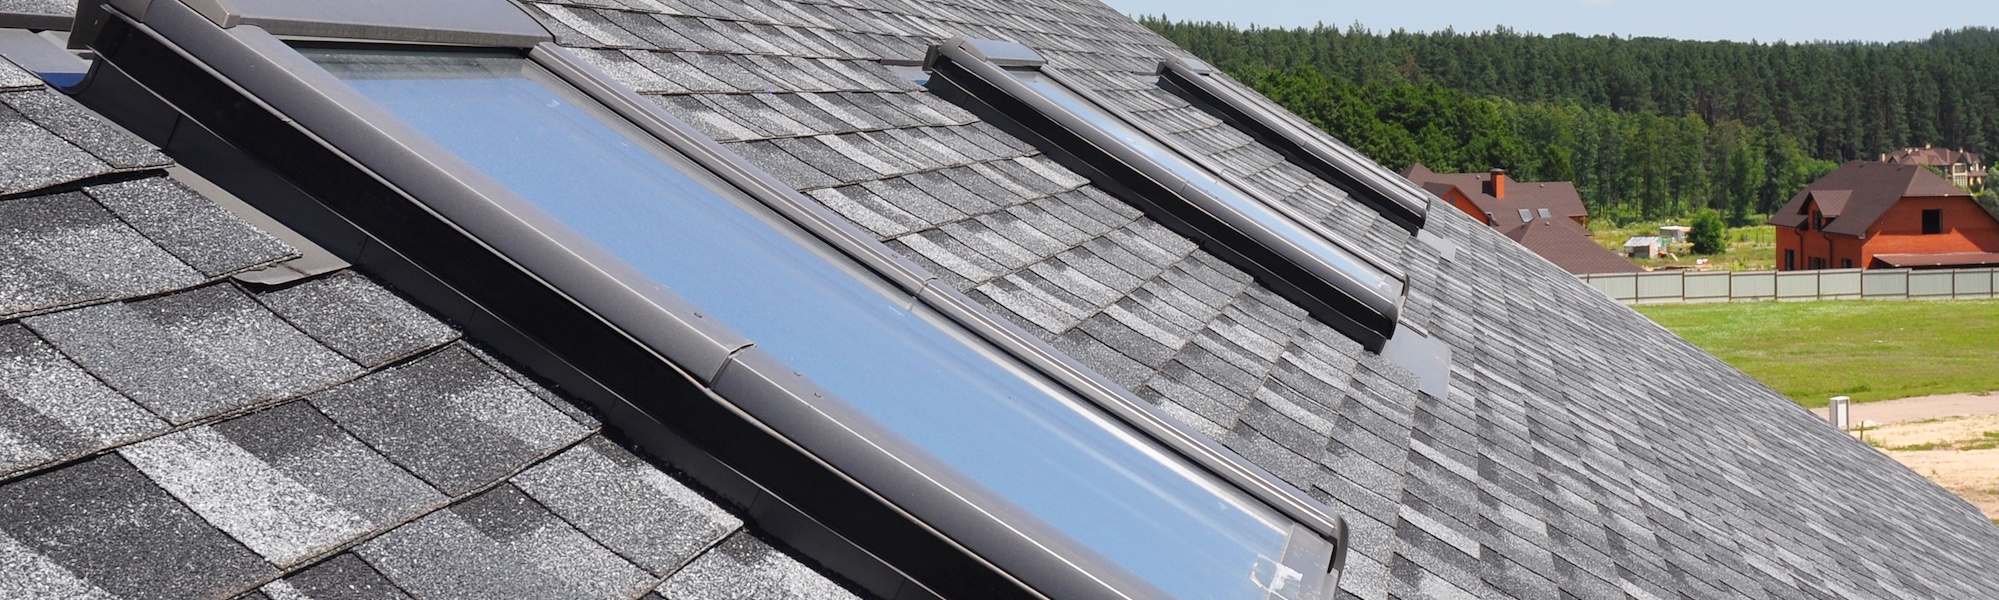 Skylights and Solarfans - Eustis Roofing Company in Lake County, FL